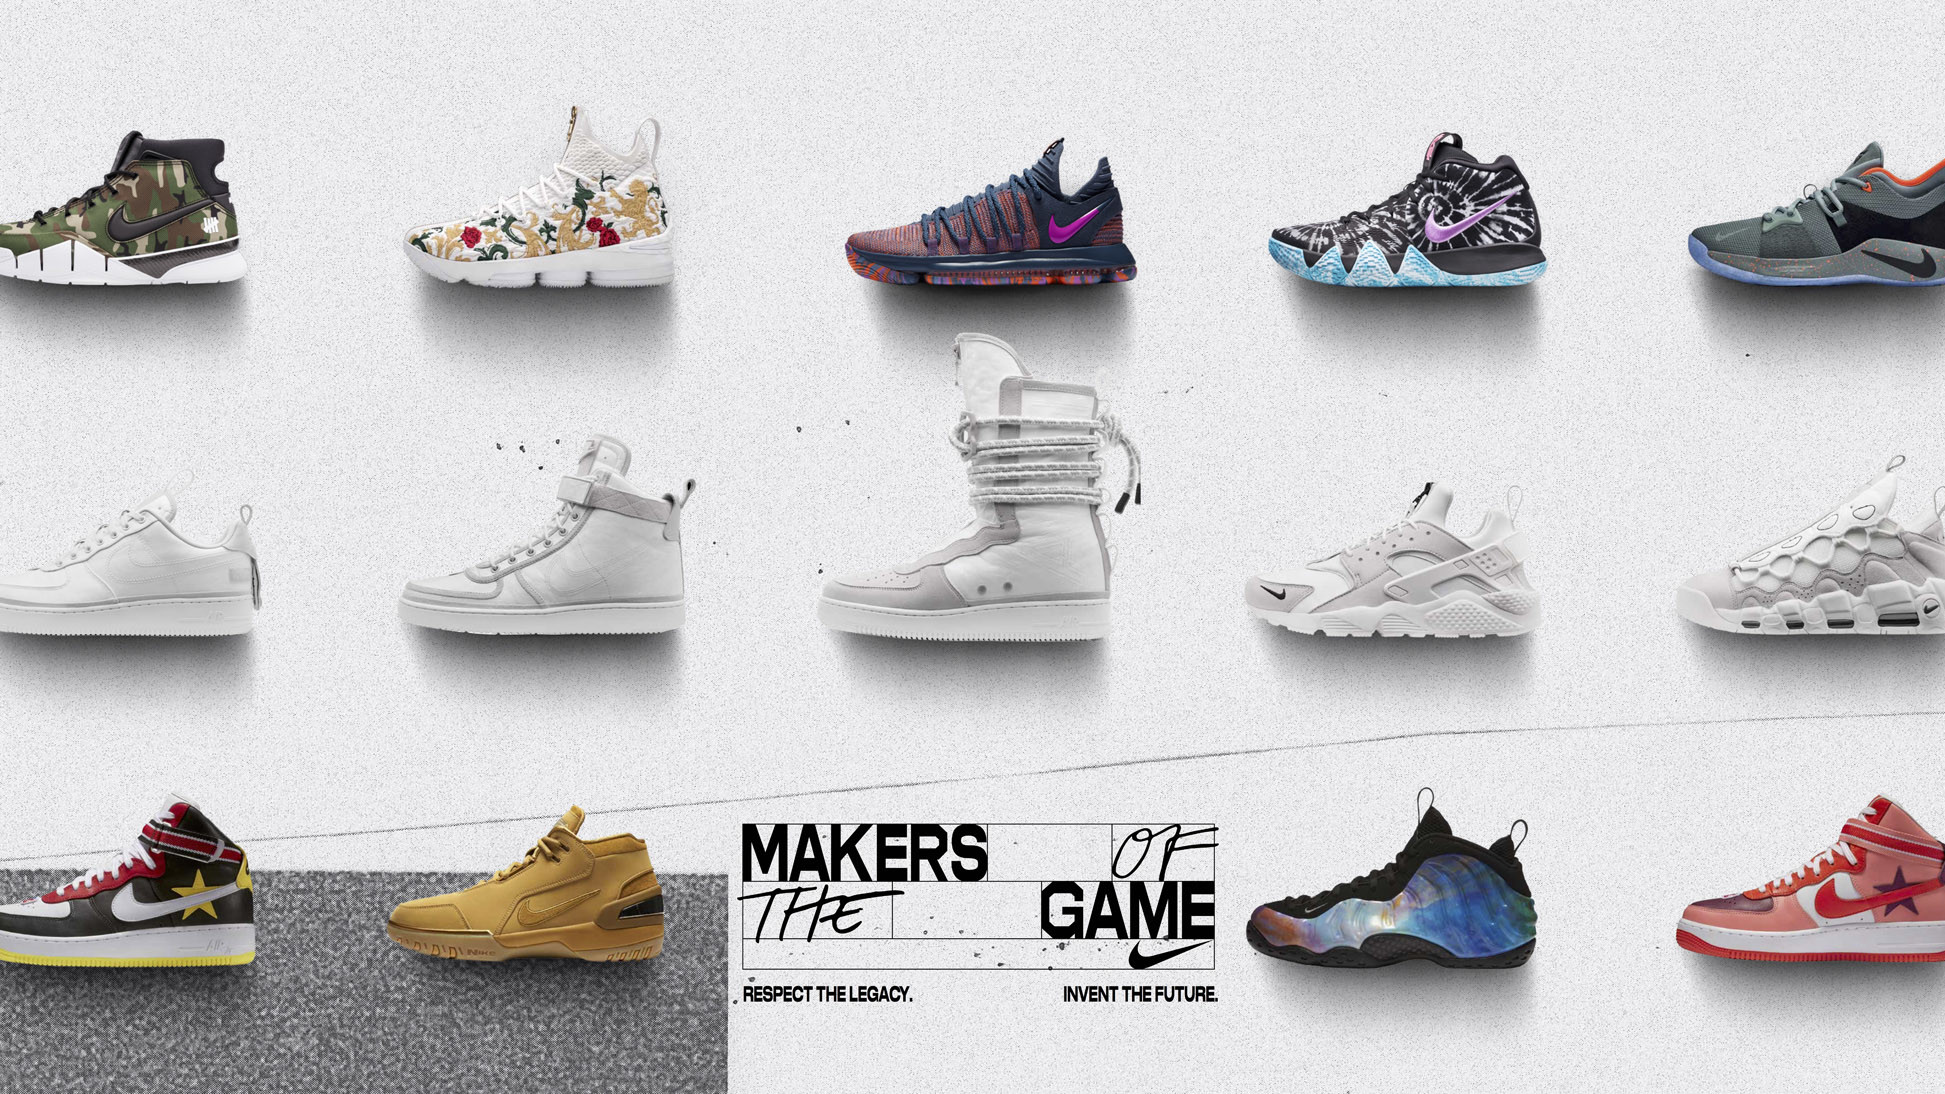 db4d87ec15a3b Nike Makers of the Game Sneaker Collection